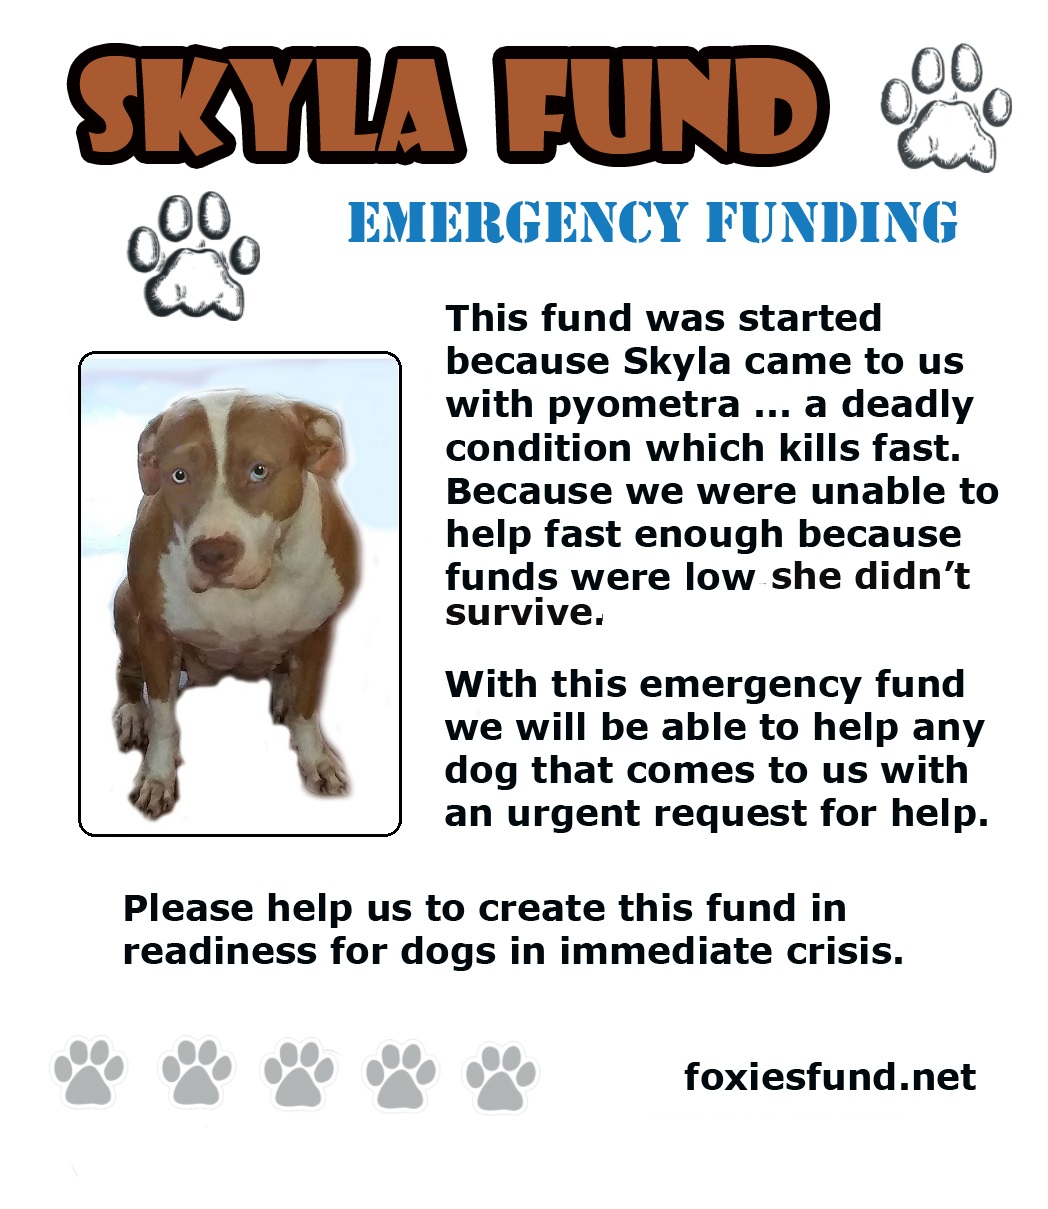 With the Syla Fund, dogs will also have a neuter/spade done as well. This will prevent any future risk of developing Pyometra. Help critical needs dogs survive urgent requests for help. Donate to the Skyla fund today.